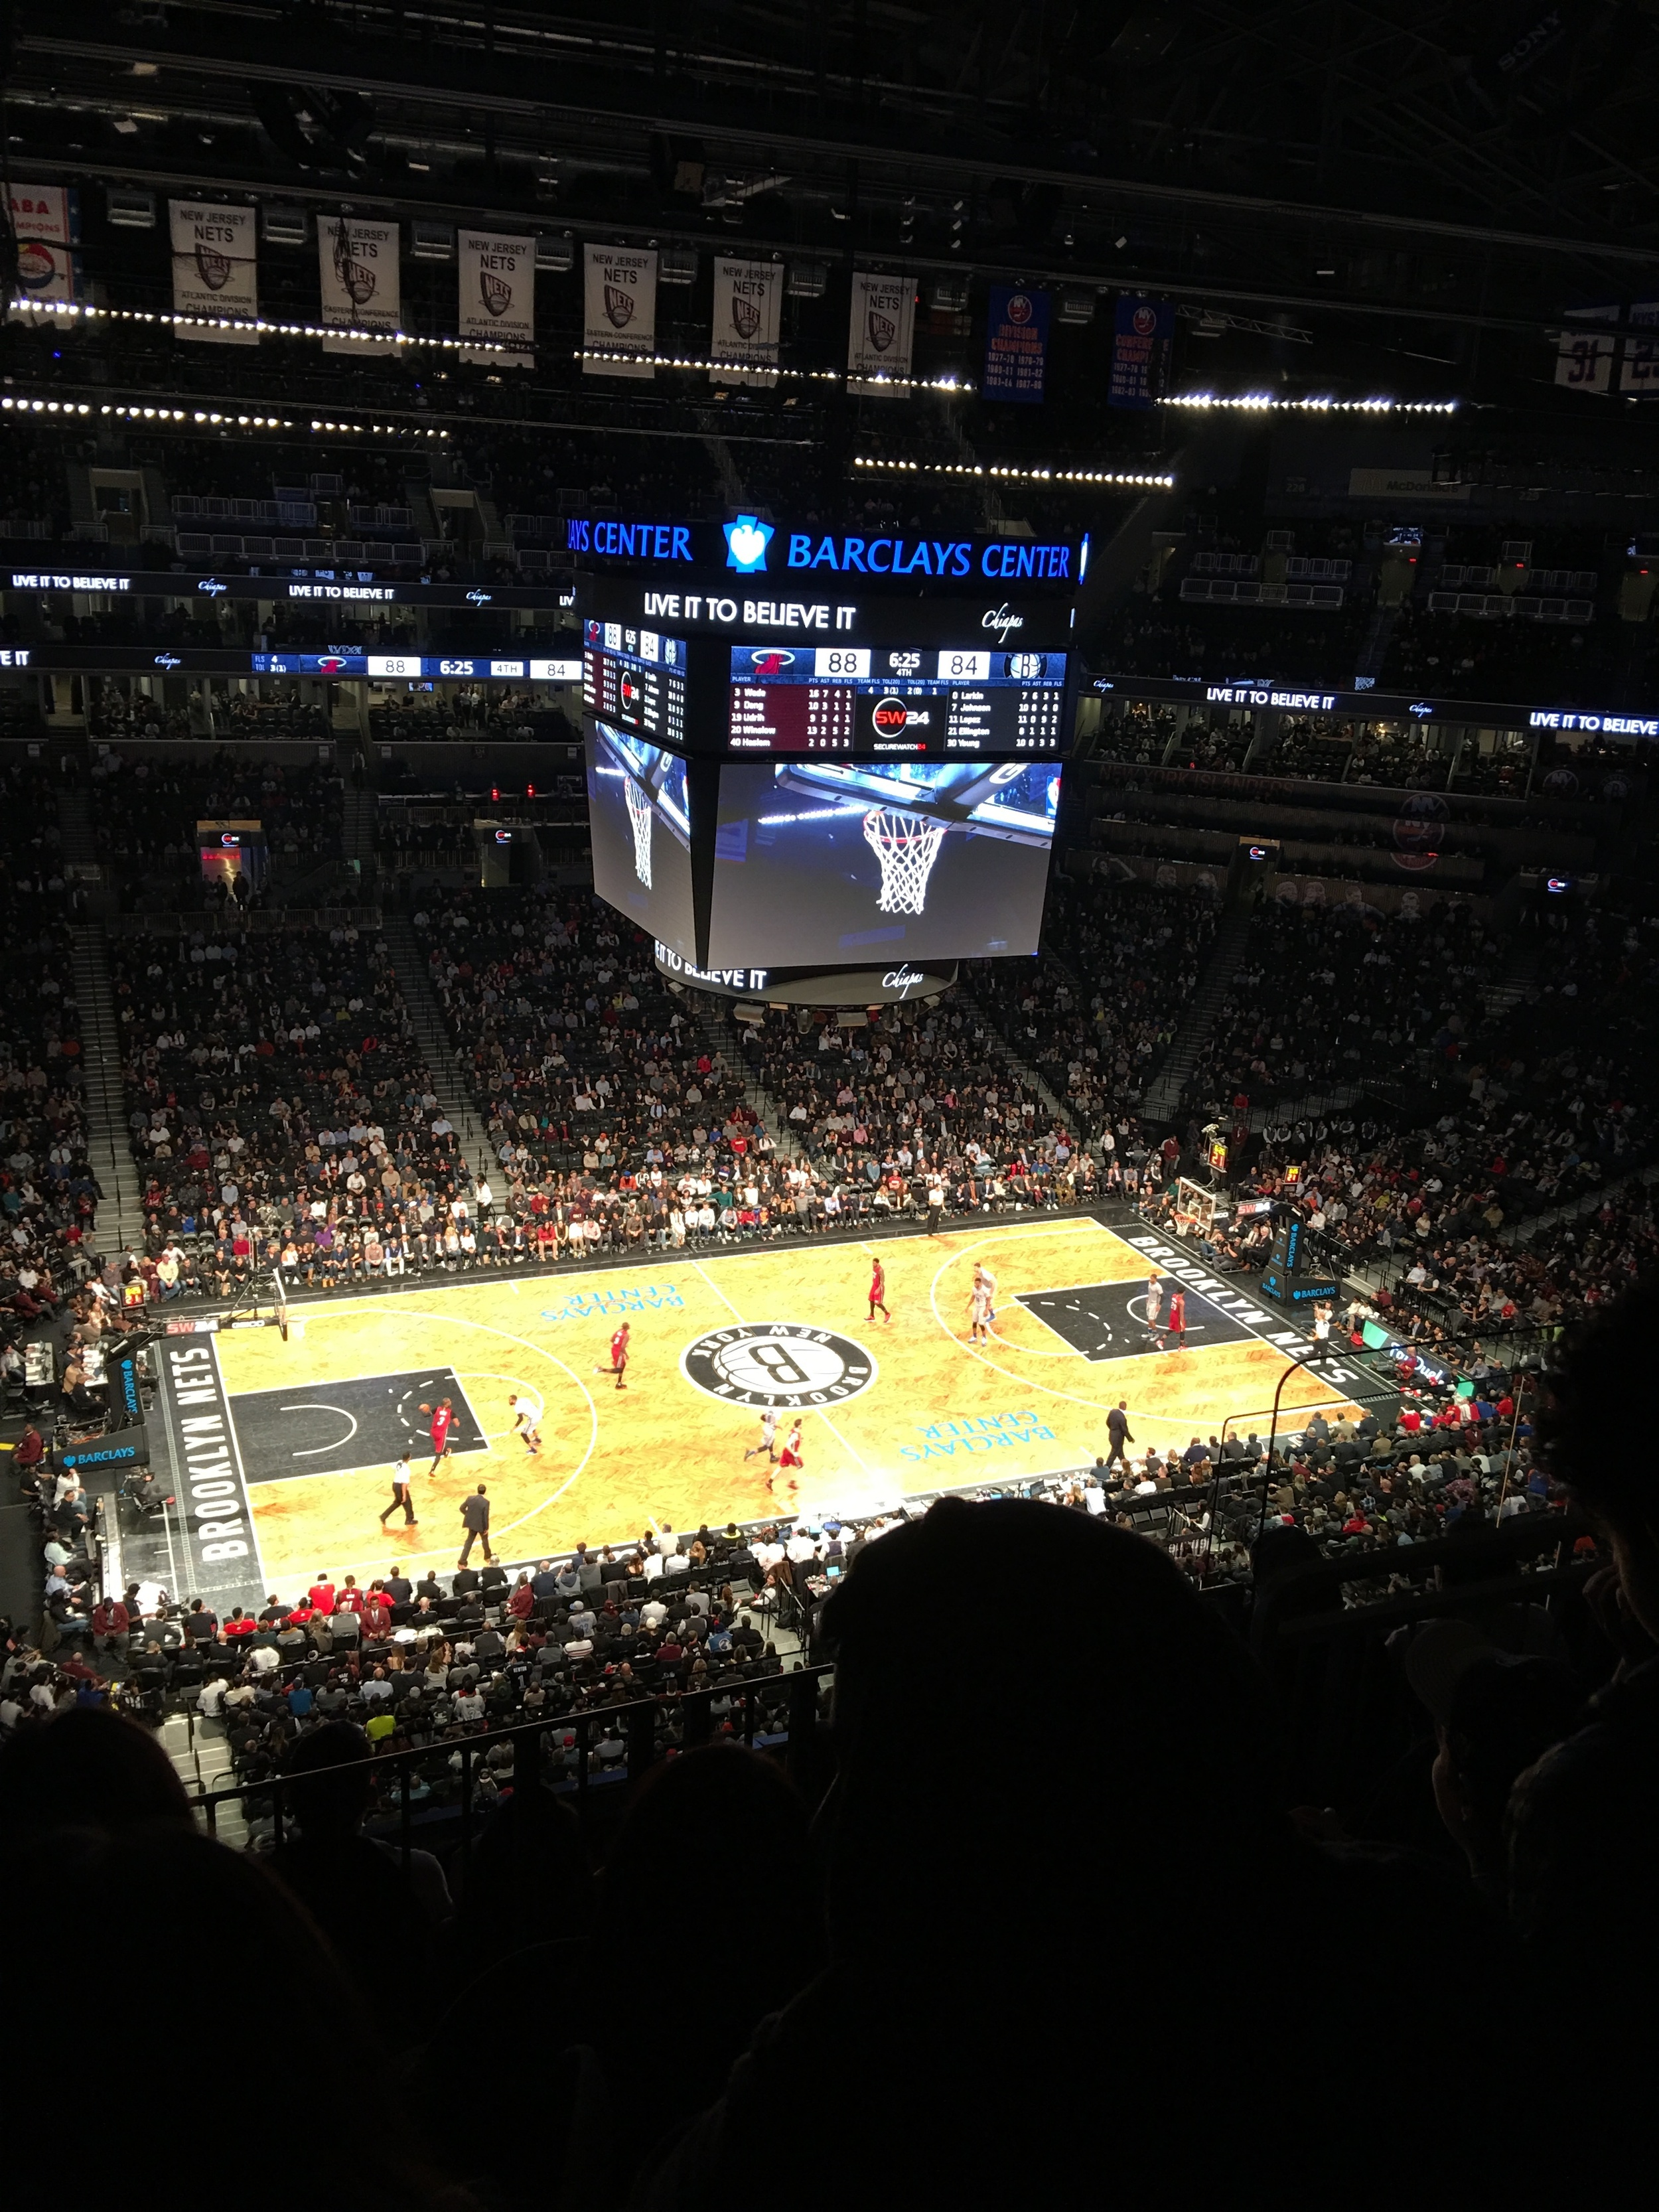 Brooklyn Nets x Miami Heat, at the Barclays Center, Brooklyn, New York – on January 26, 2016. You might want to experience the game in person on your next trip to the United States. Follow The Welcome Hub, a travel experience agency, on Facebook and  Twitter for helpful tips on tours and games. They create customized thematic experiences.